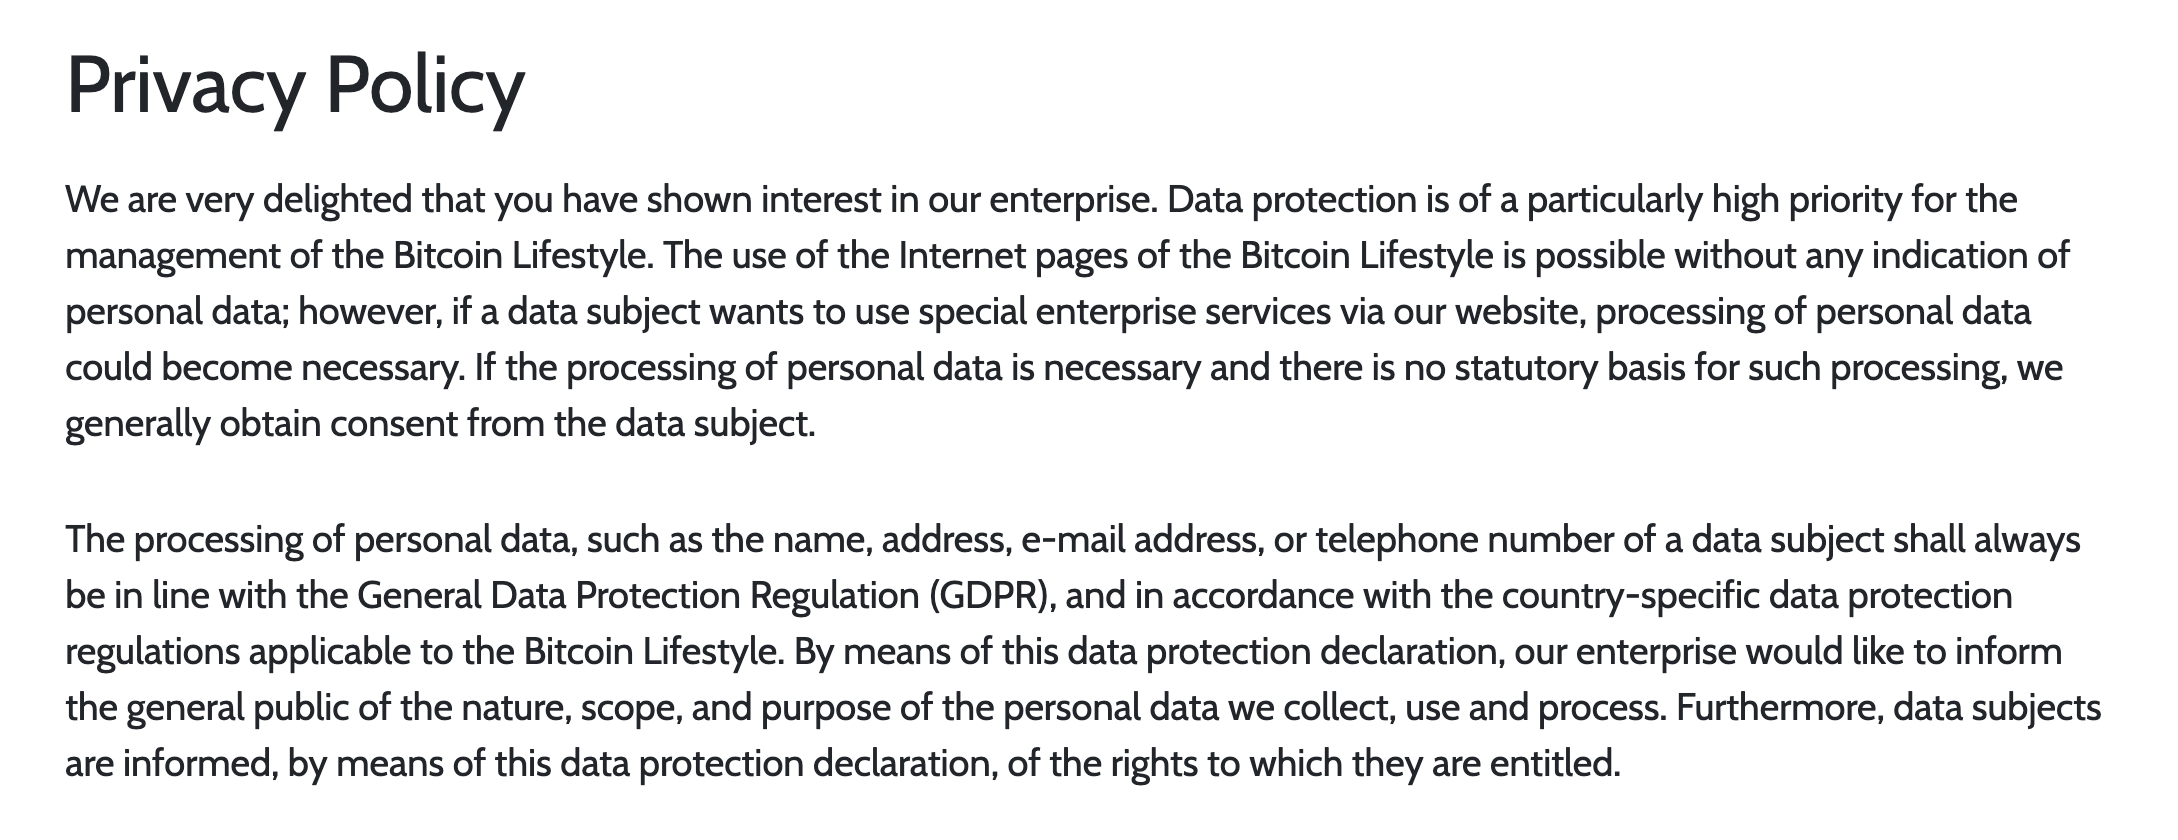 Privacy policy of Bitcoin Lifestyle